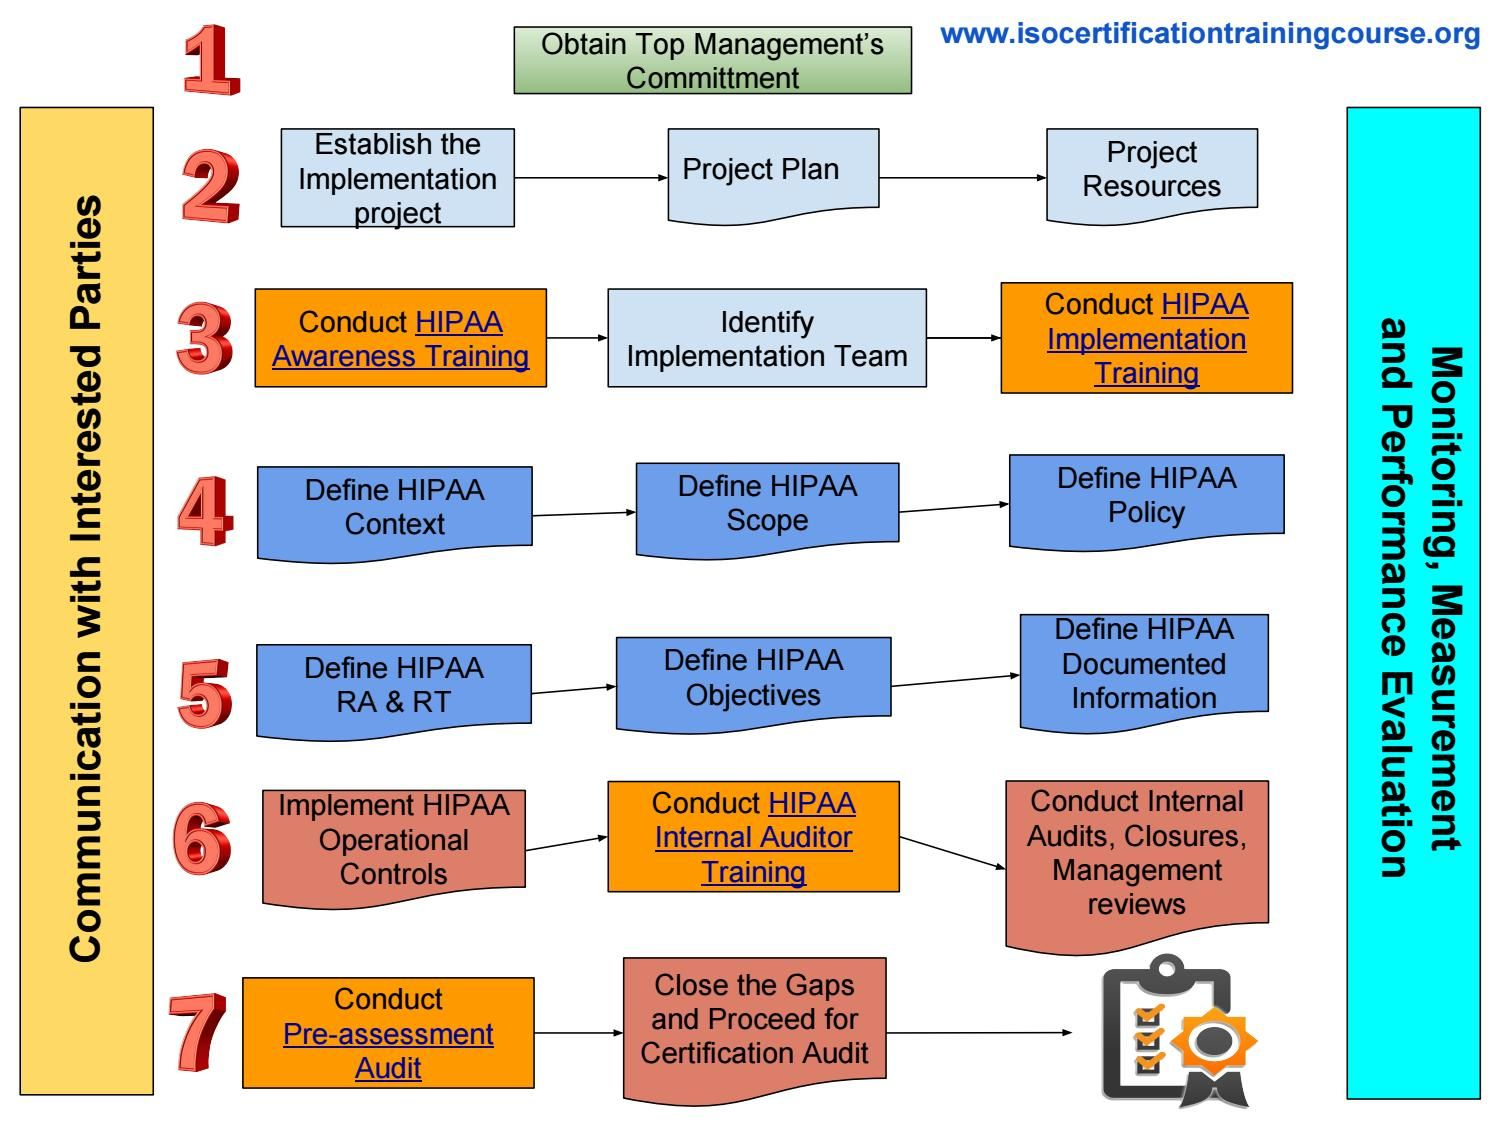 hight resolution of for successful results auditee organizations are required to follow these steps as mentioned in the process flow diagram to achieve hipaa certification